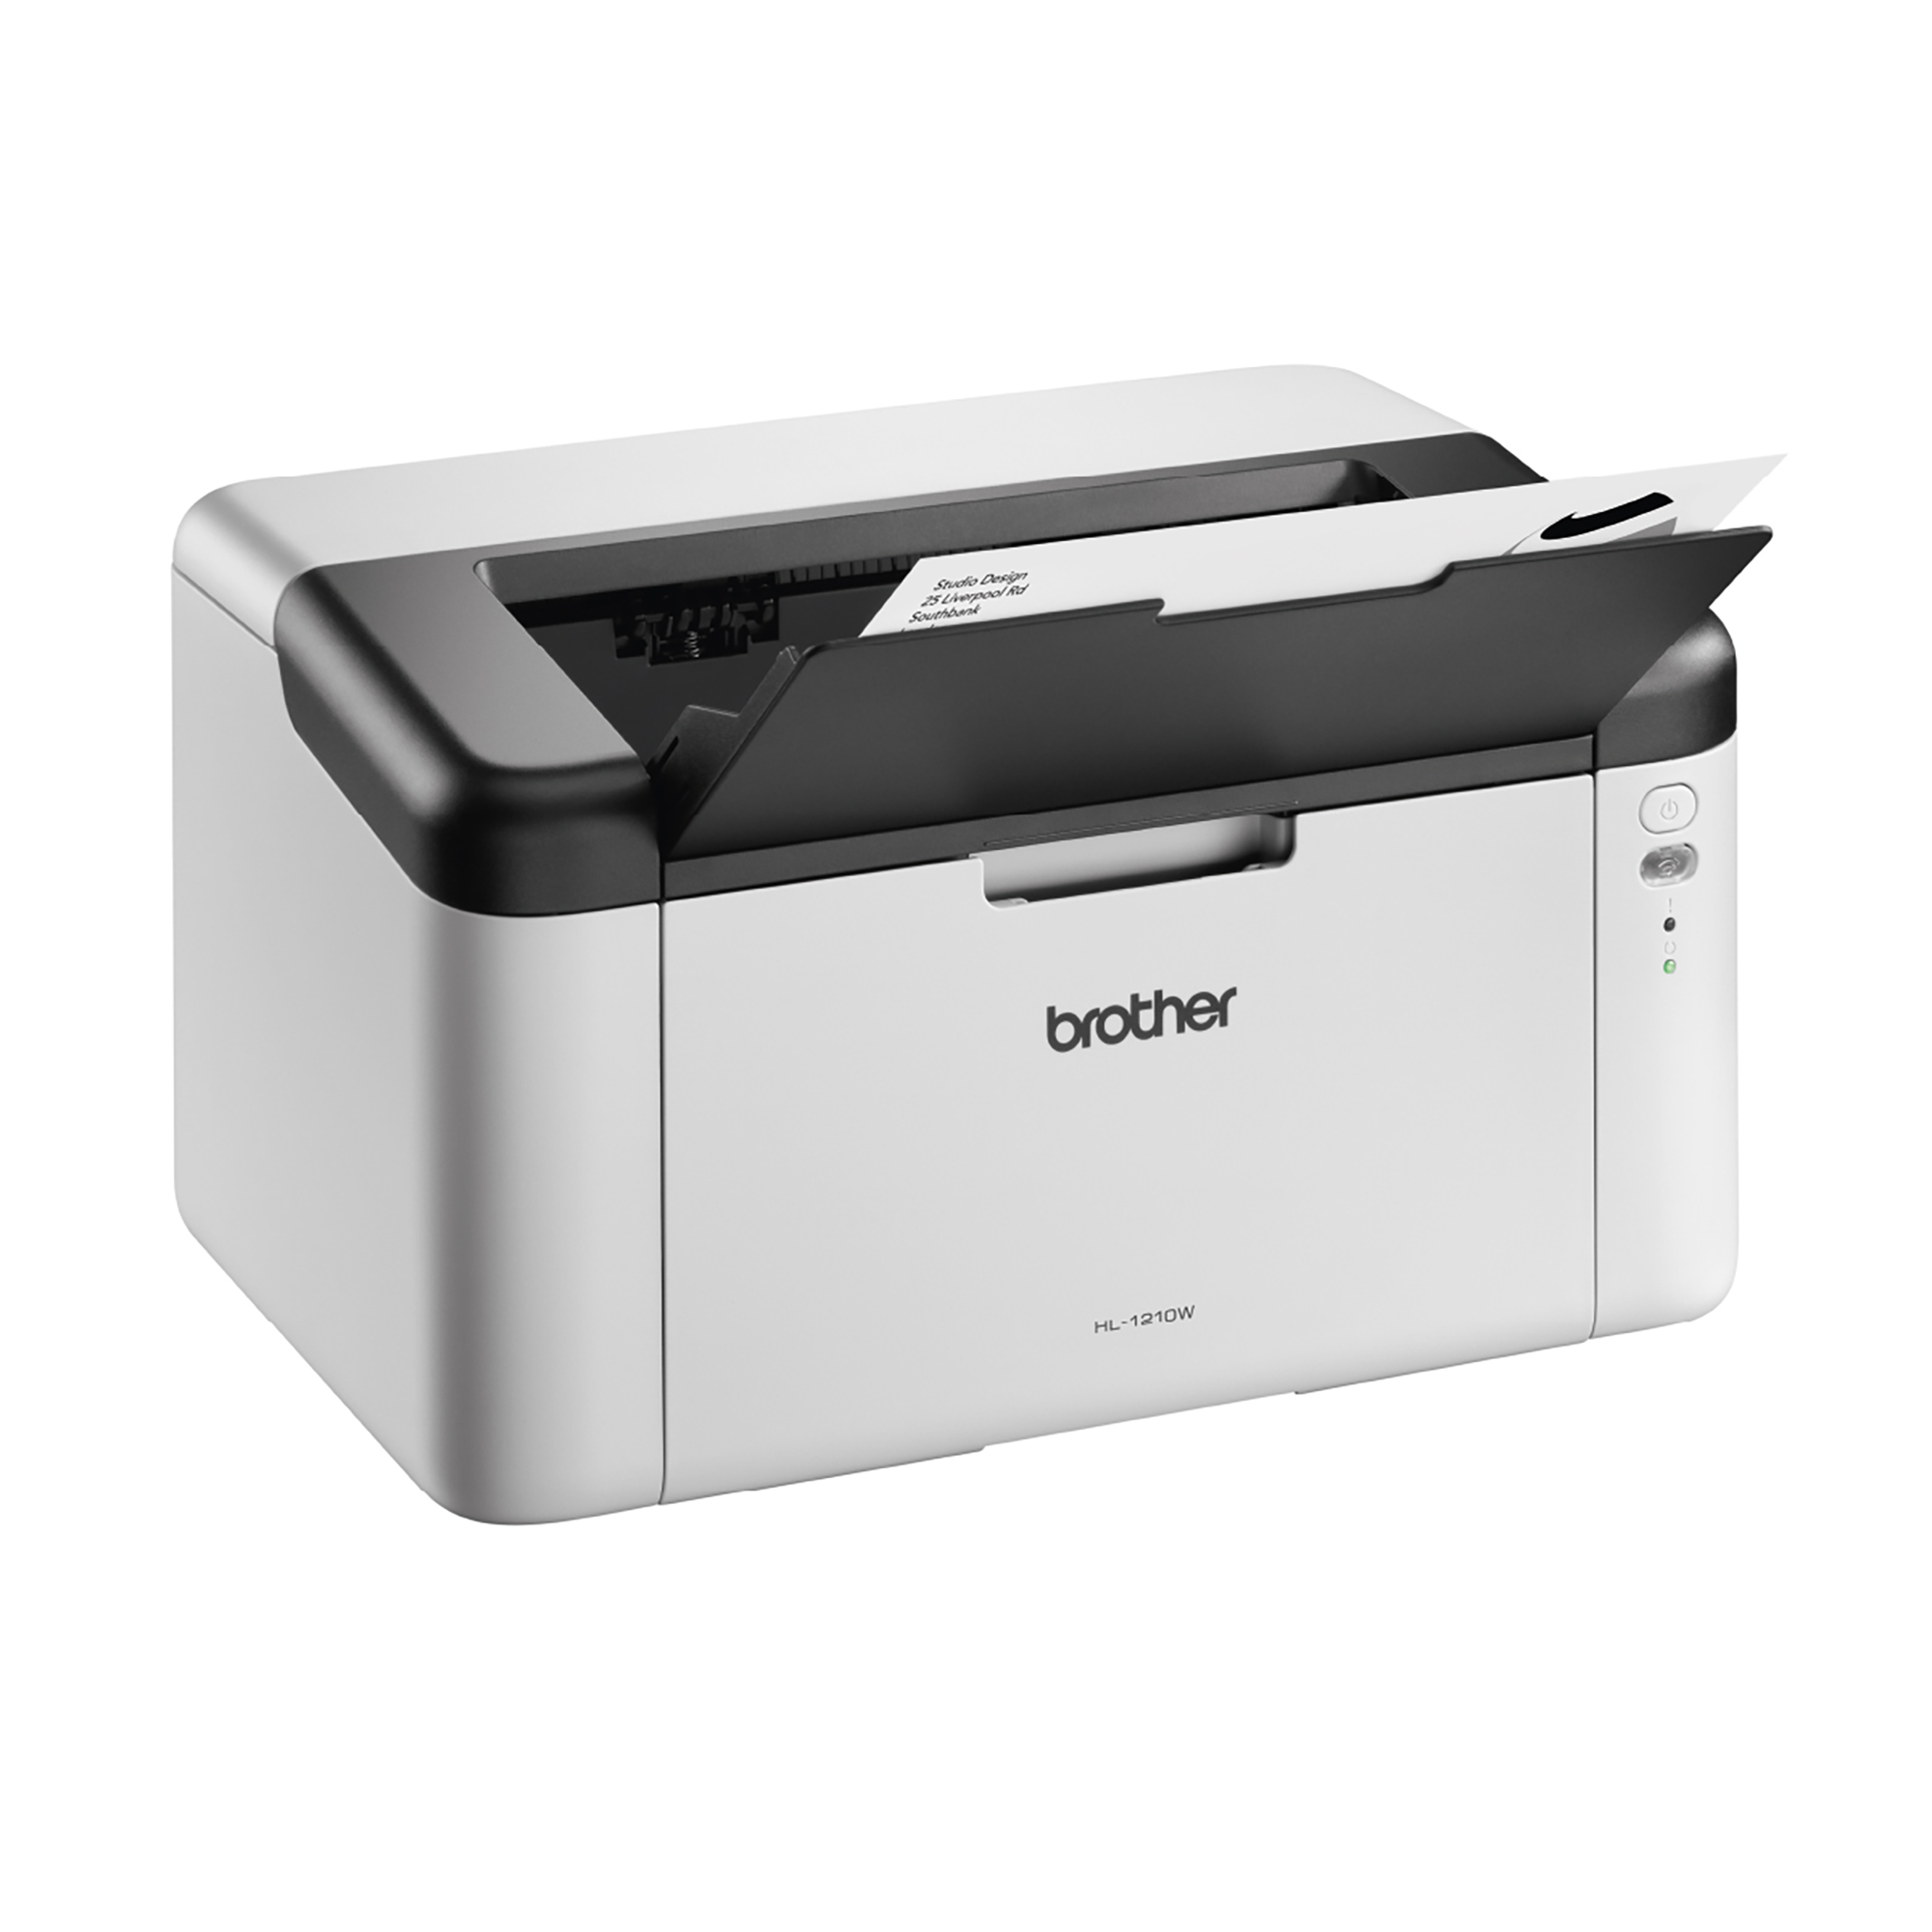 Brother HL1210W All-in-Box Laser Printer Ref HL1210WVBZU1